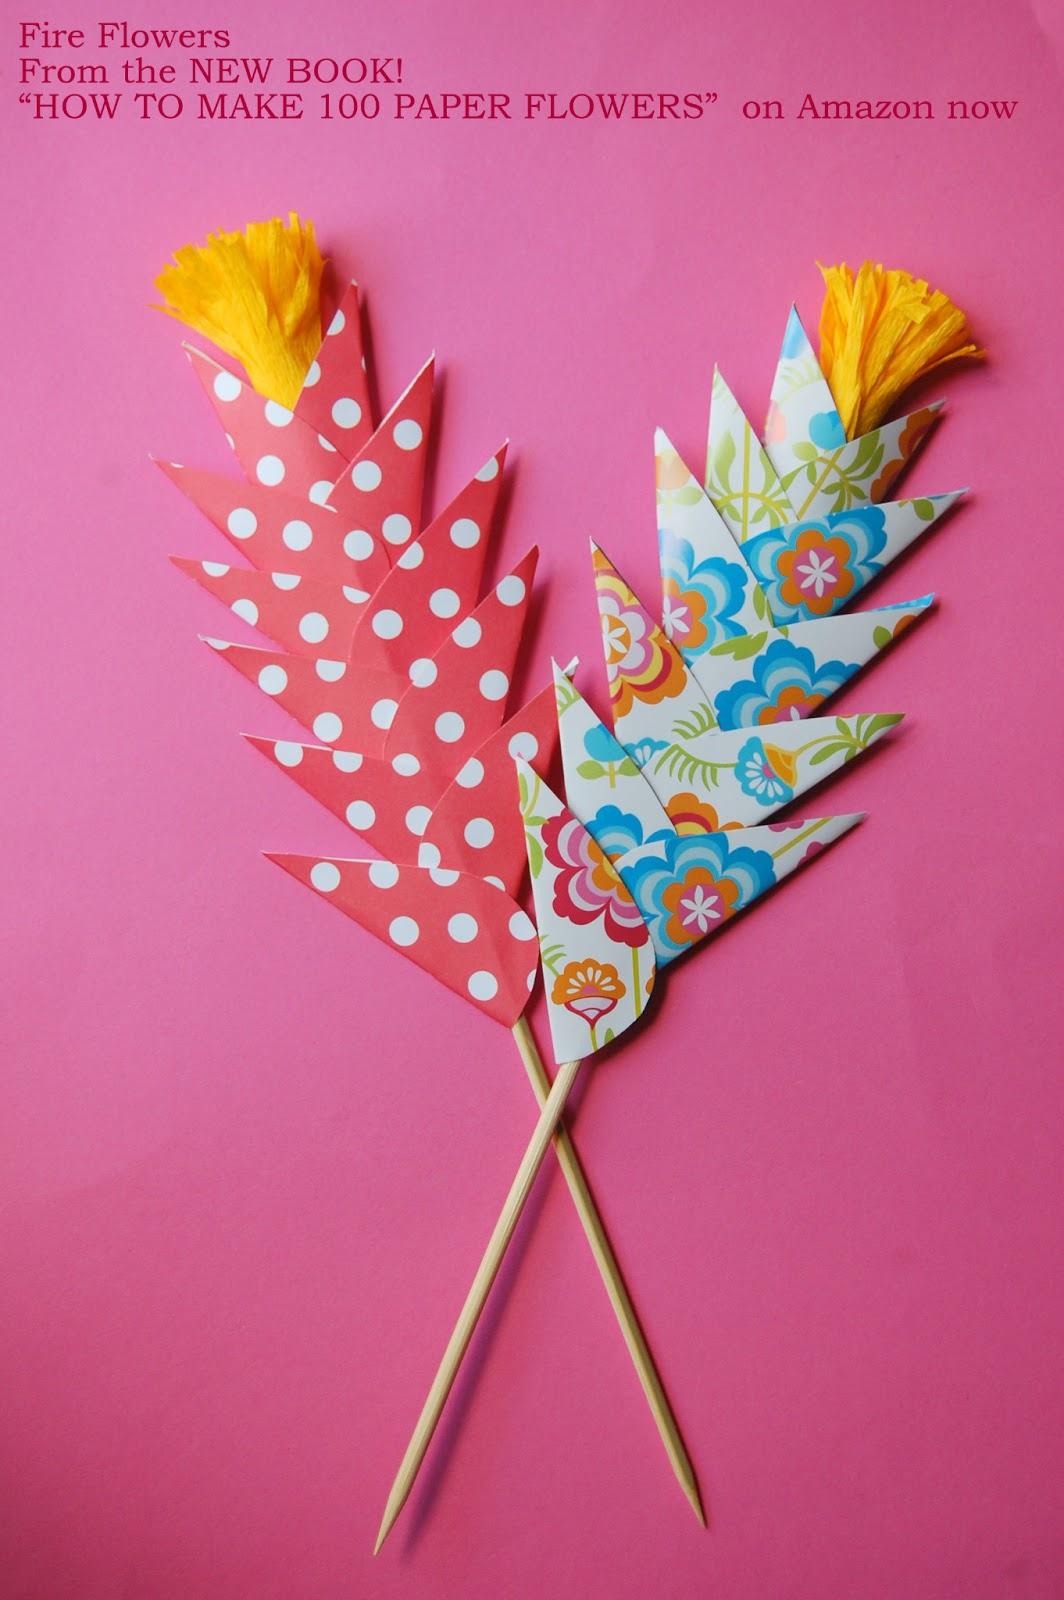 30 Beauty How To Make Handmade Flowers From